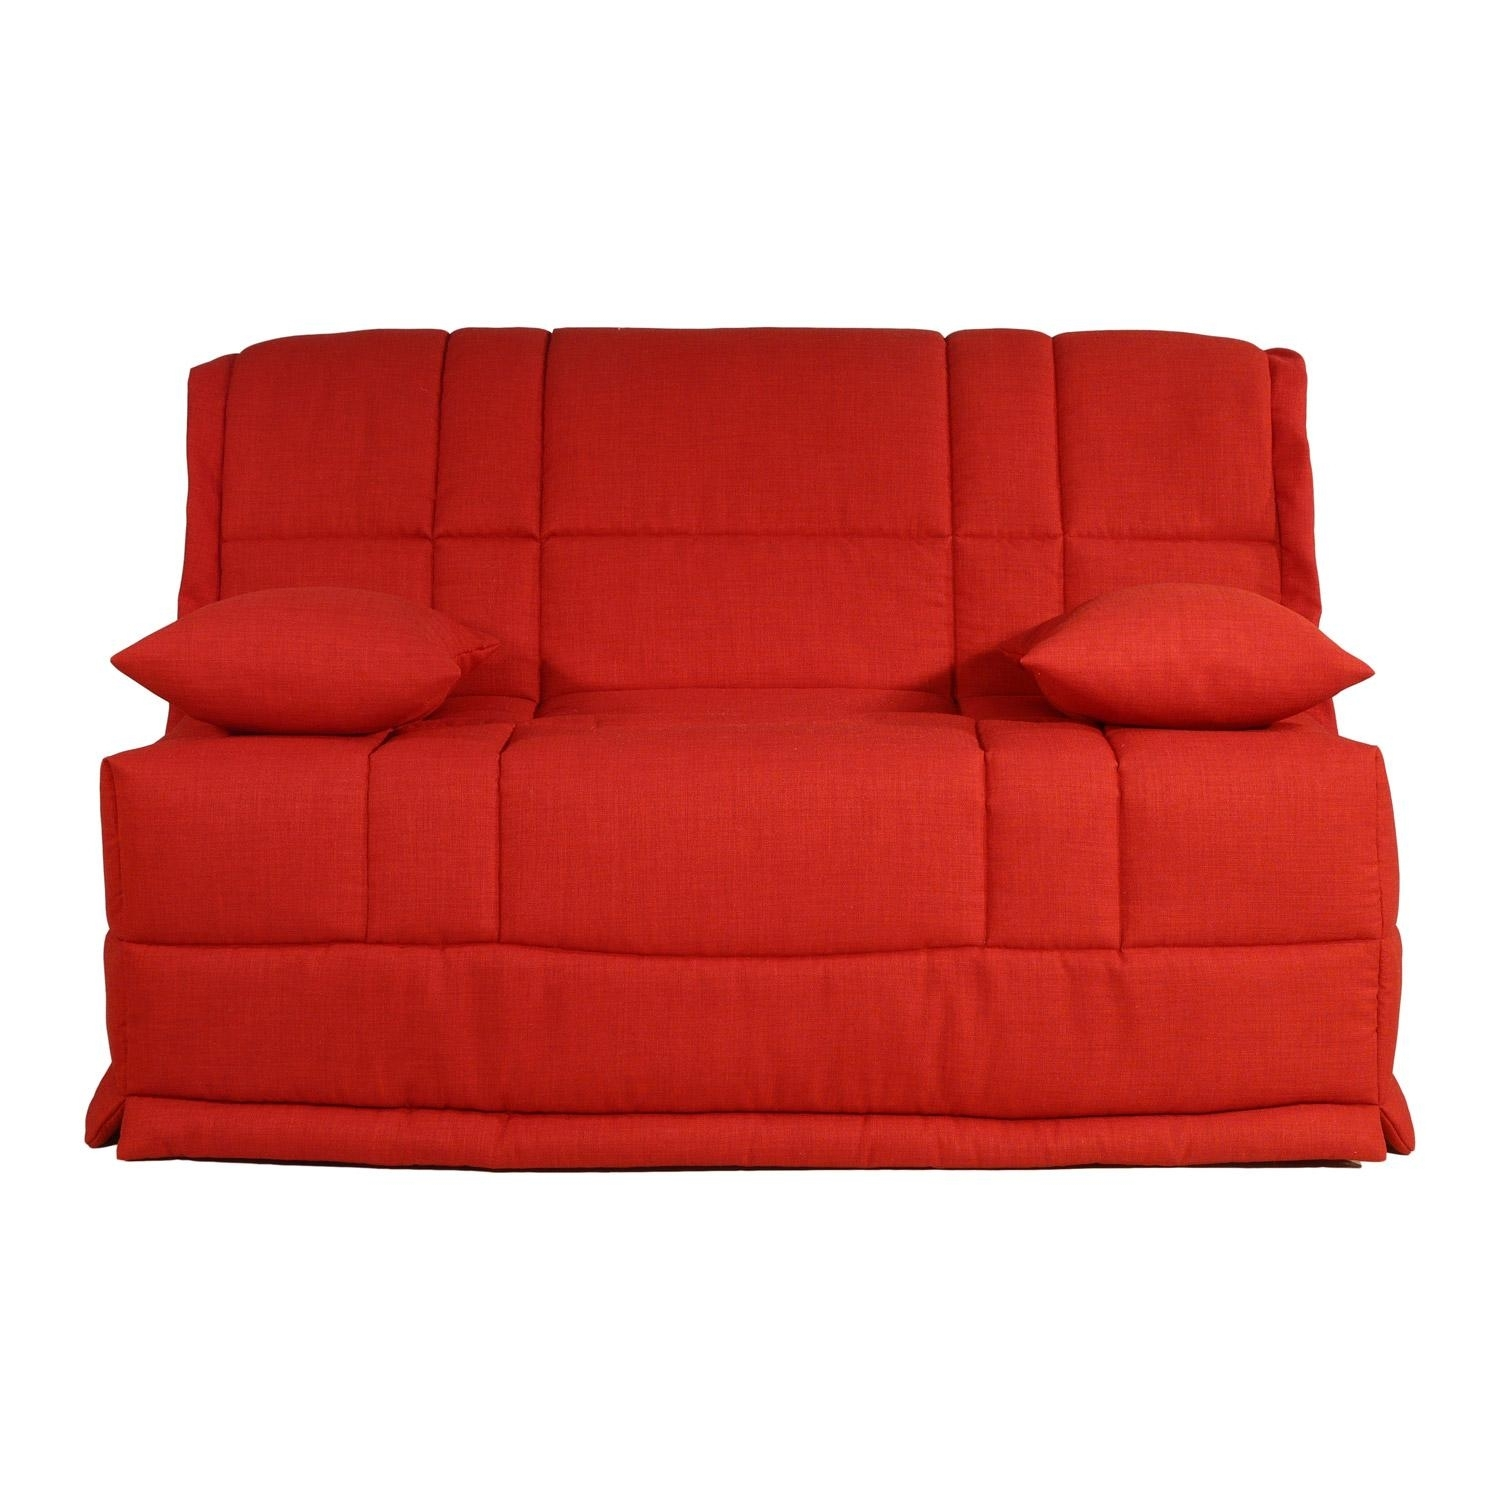 banquette bz bultex rouge cobra. Black Bedroom Furniture Sets. Home Design Ideas